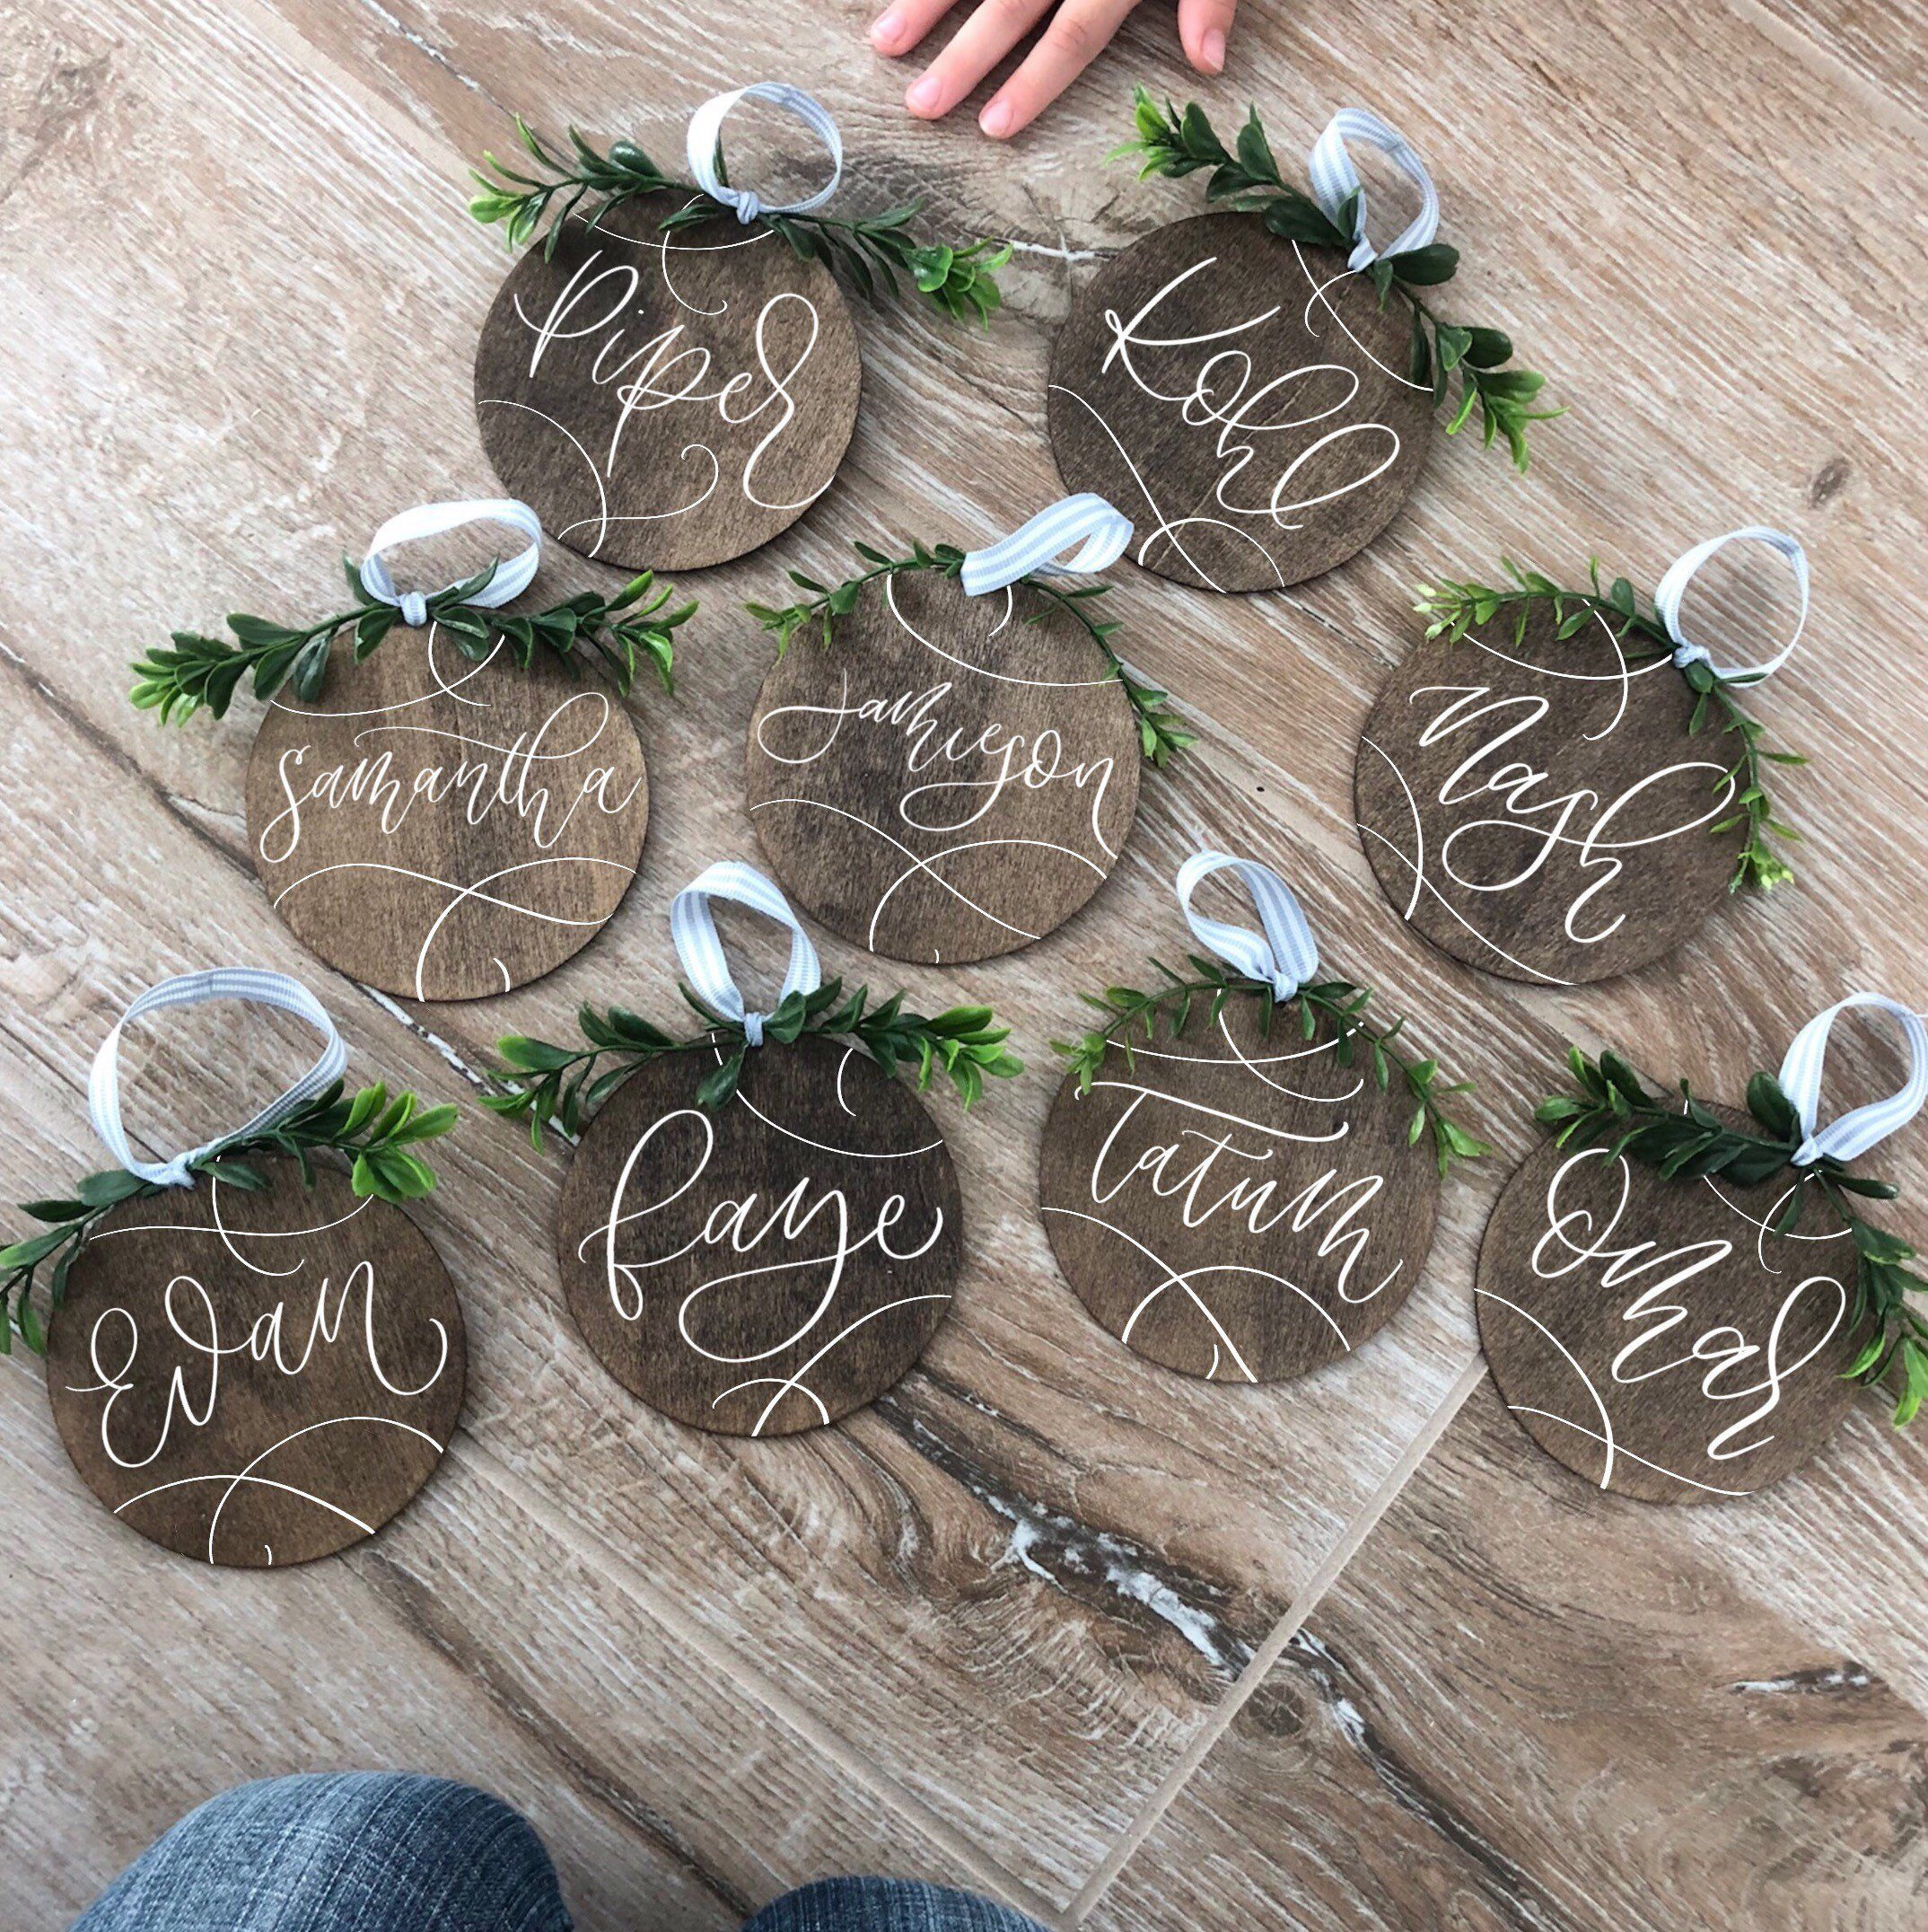 Personalized Wood Christmas Ornaments Our First Christmas Etsy Wood Christmas Ornaments Christmas Ornaments Diy Christmas Ornaments